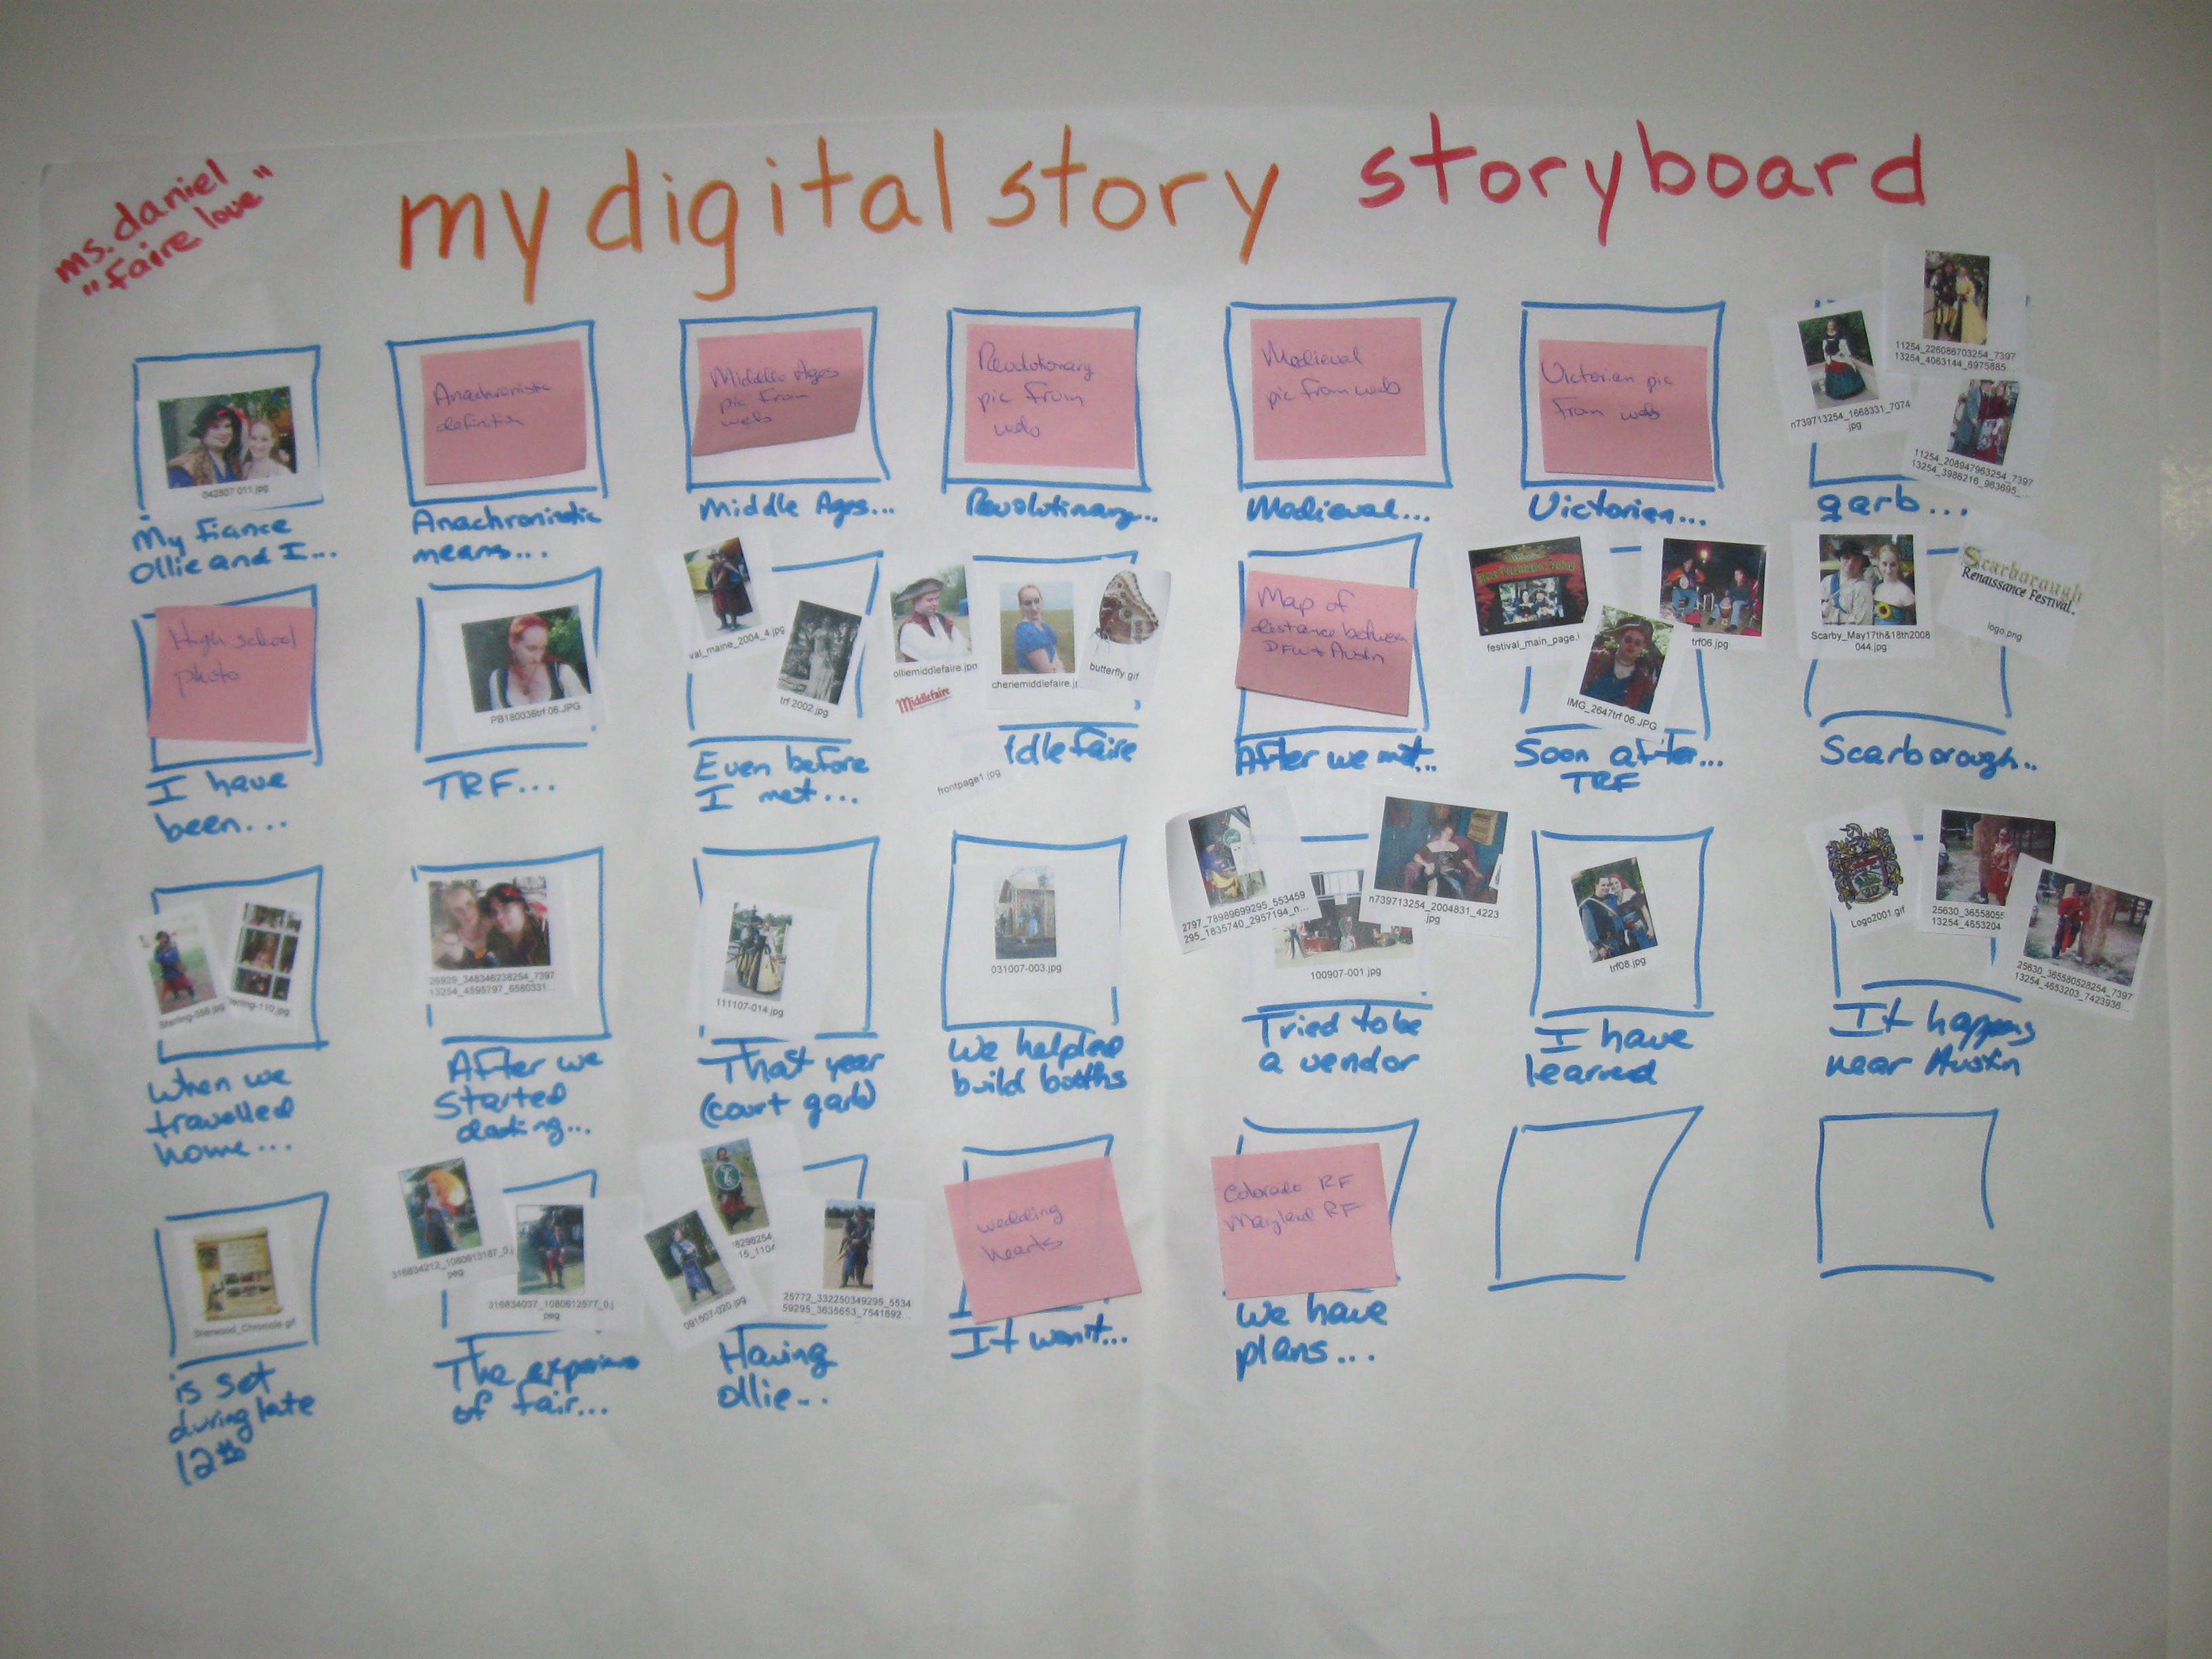 English: How to storyboard your digital narrative